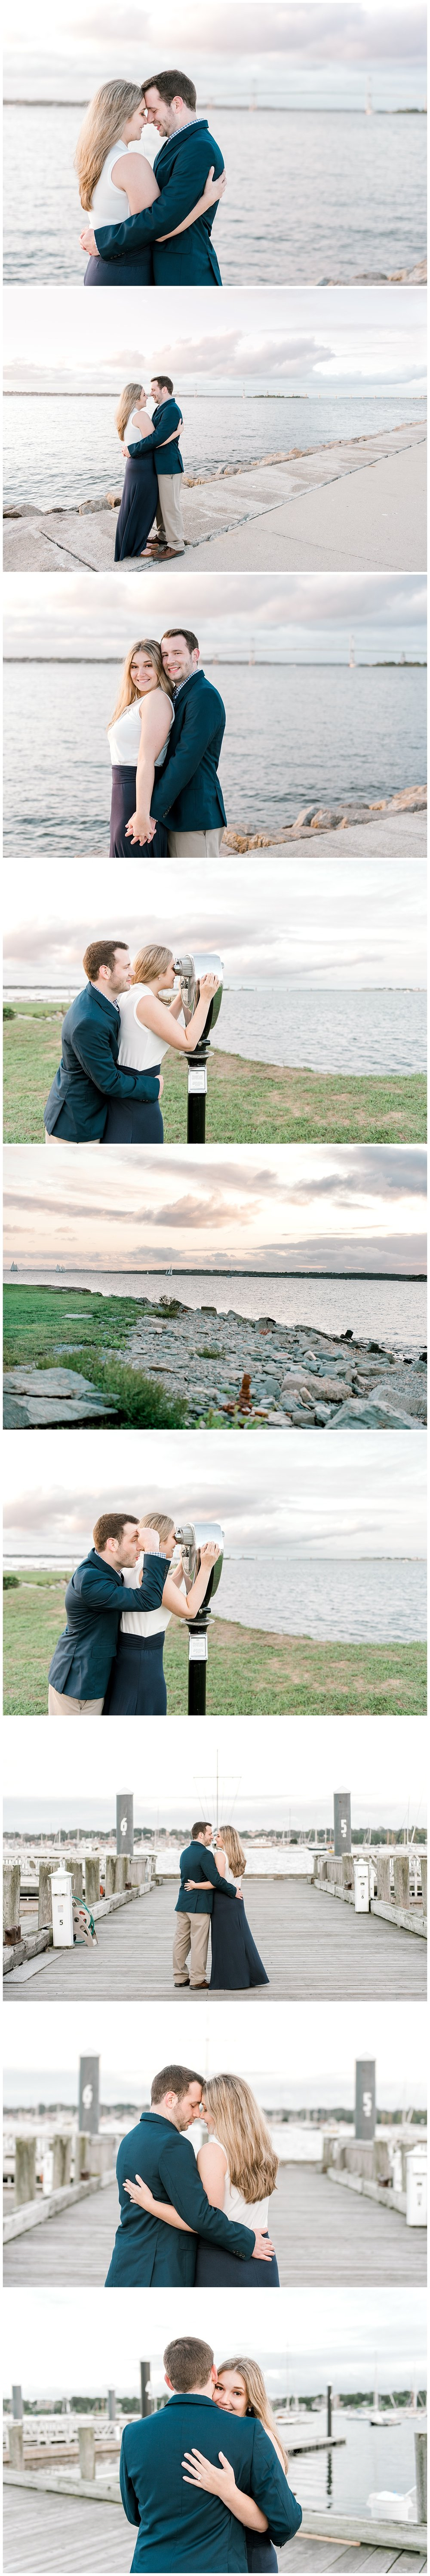 September24-newport-rhode-island-fort-adams-engagement-photography-4.jpg